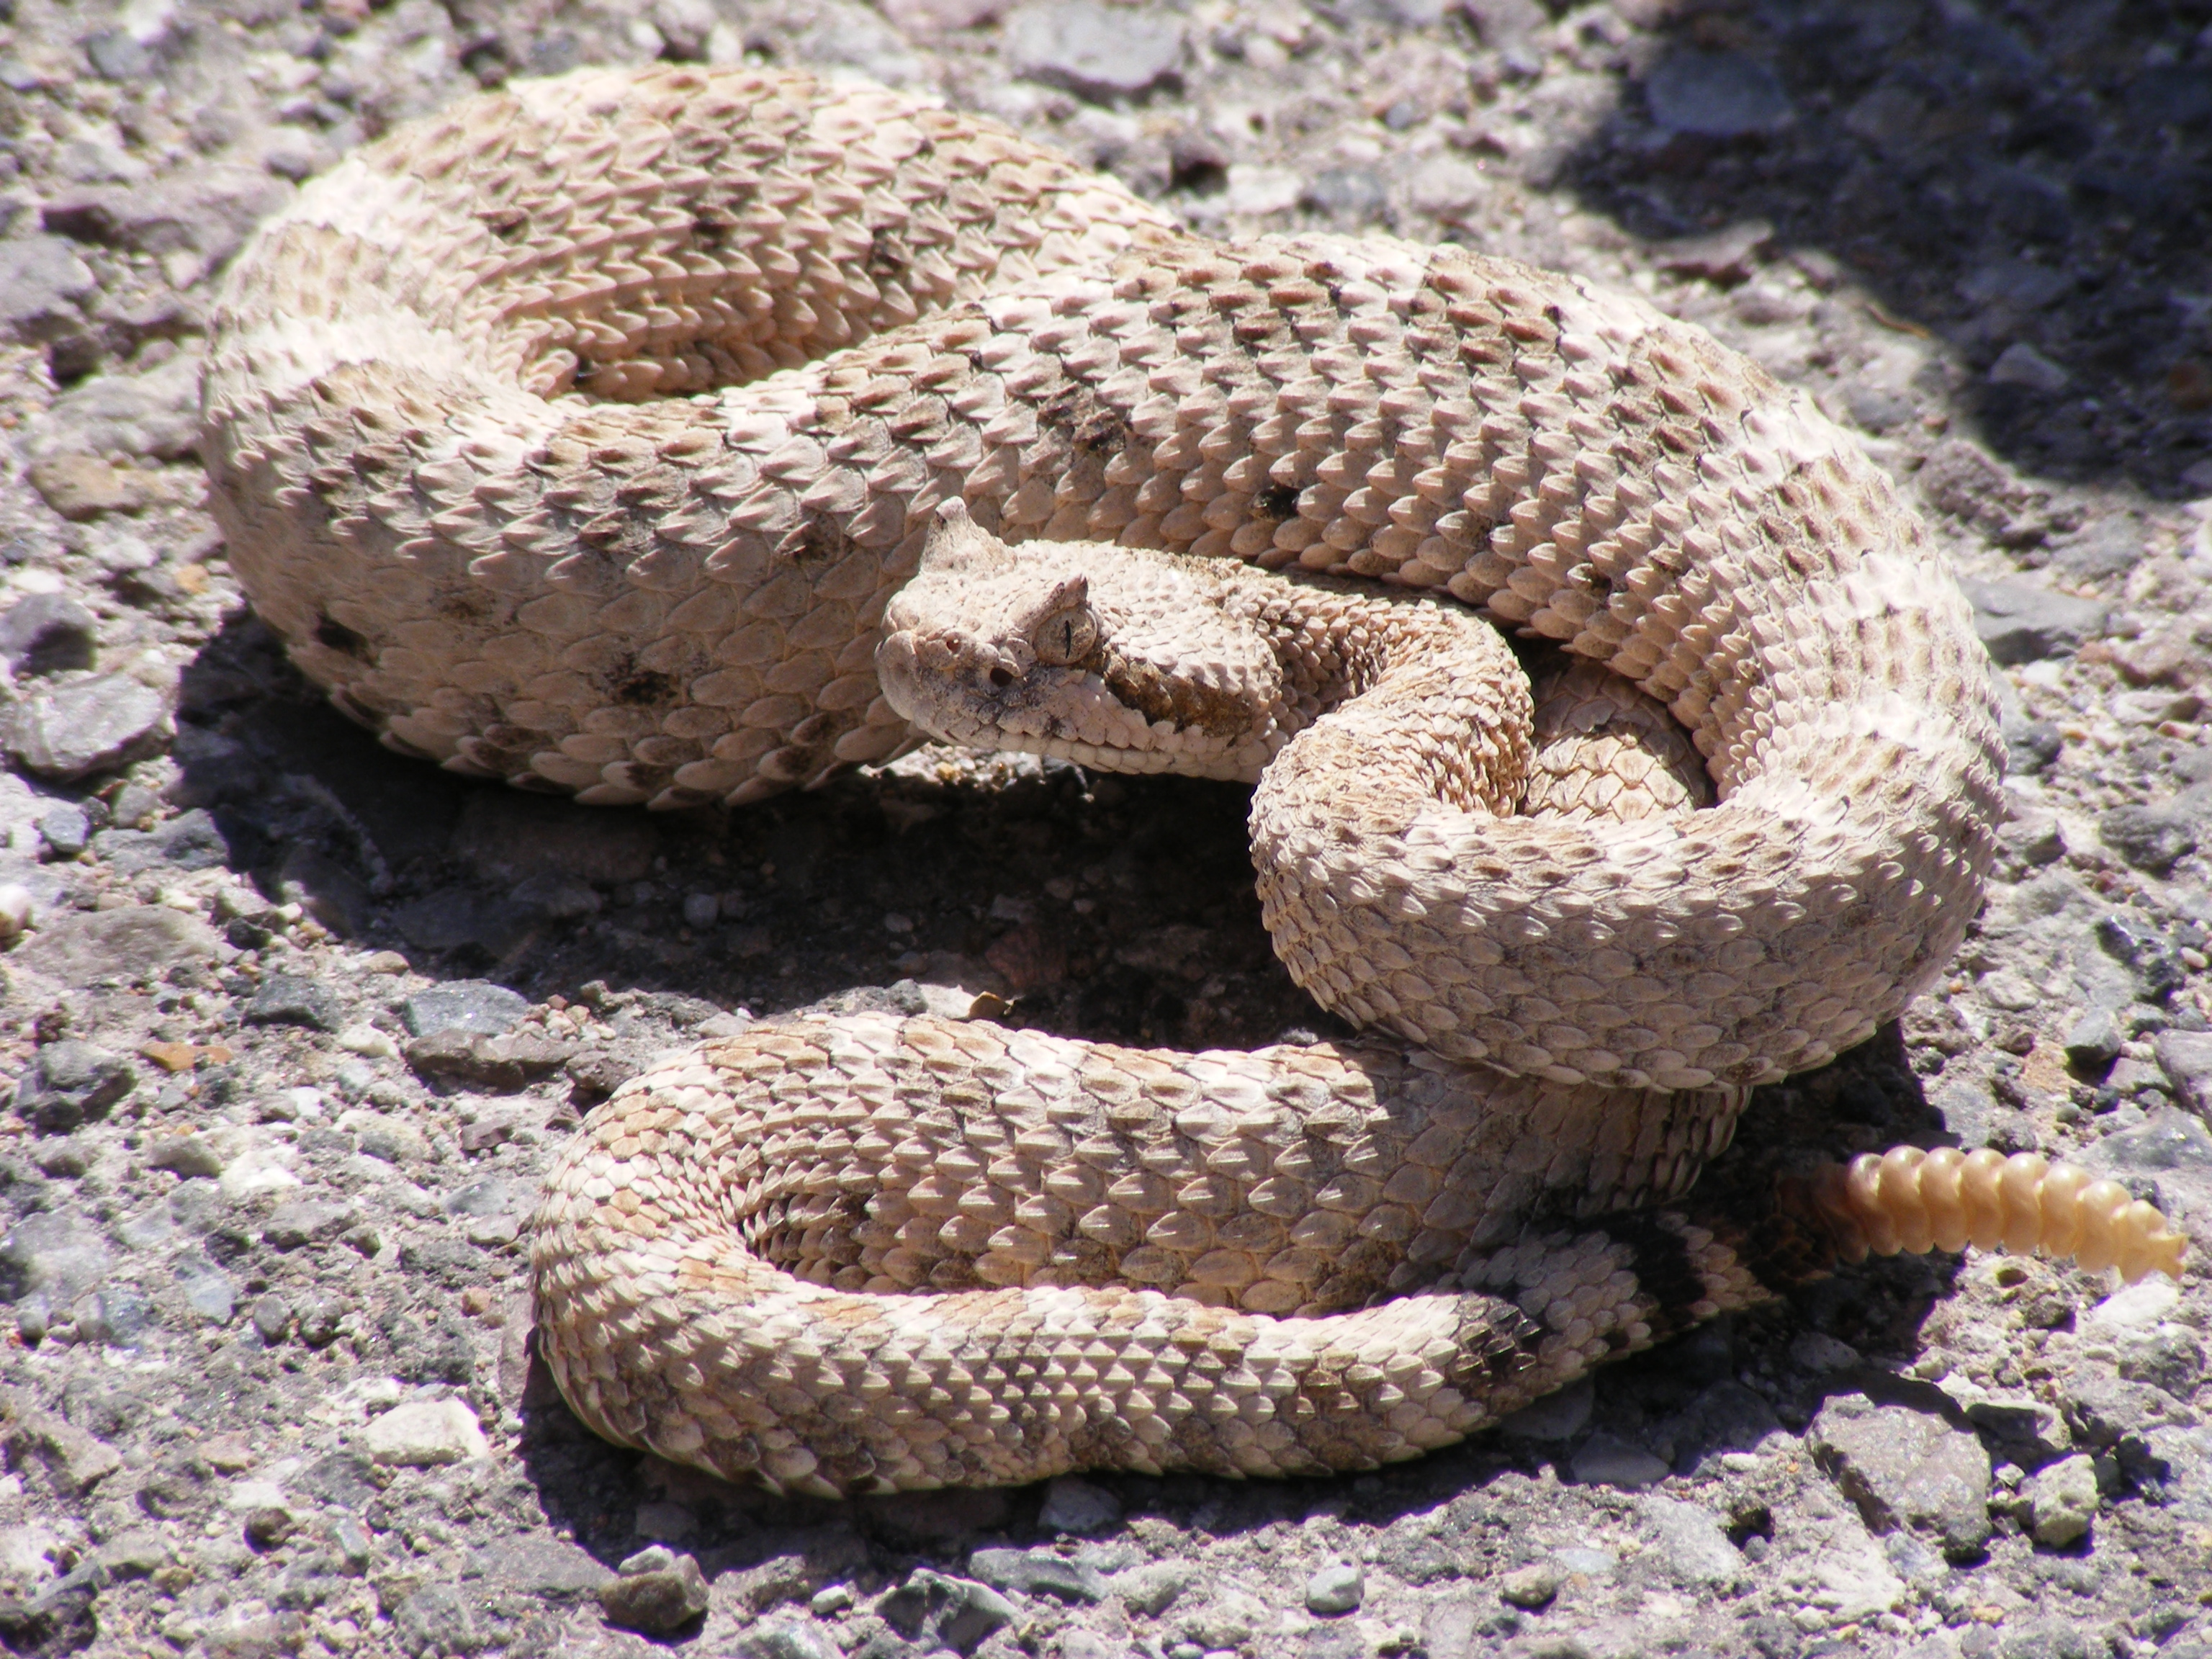 http://upload.wikimedia.org/wikipedia/commons/4/4b/Crotalus_cerastes_mesquite_springs_CA.JPG